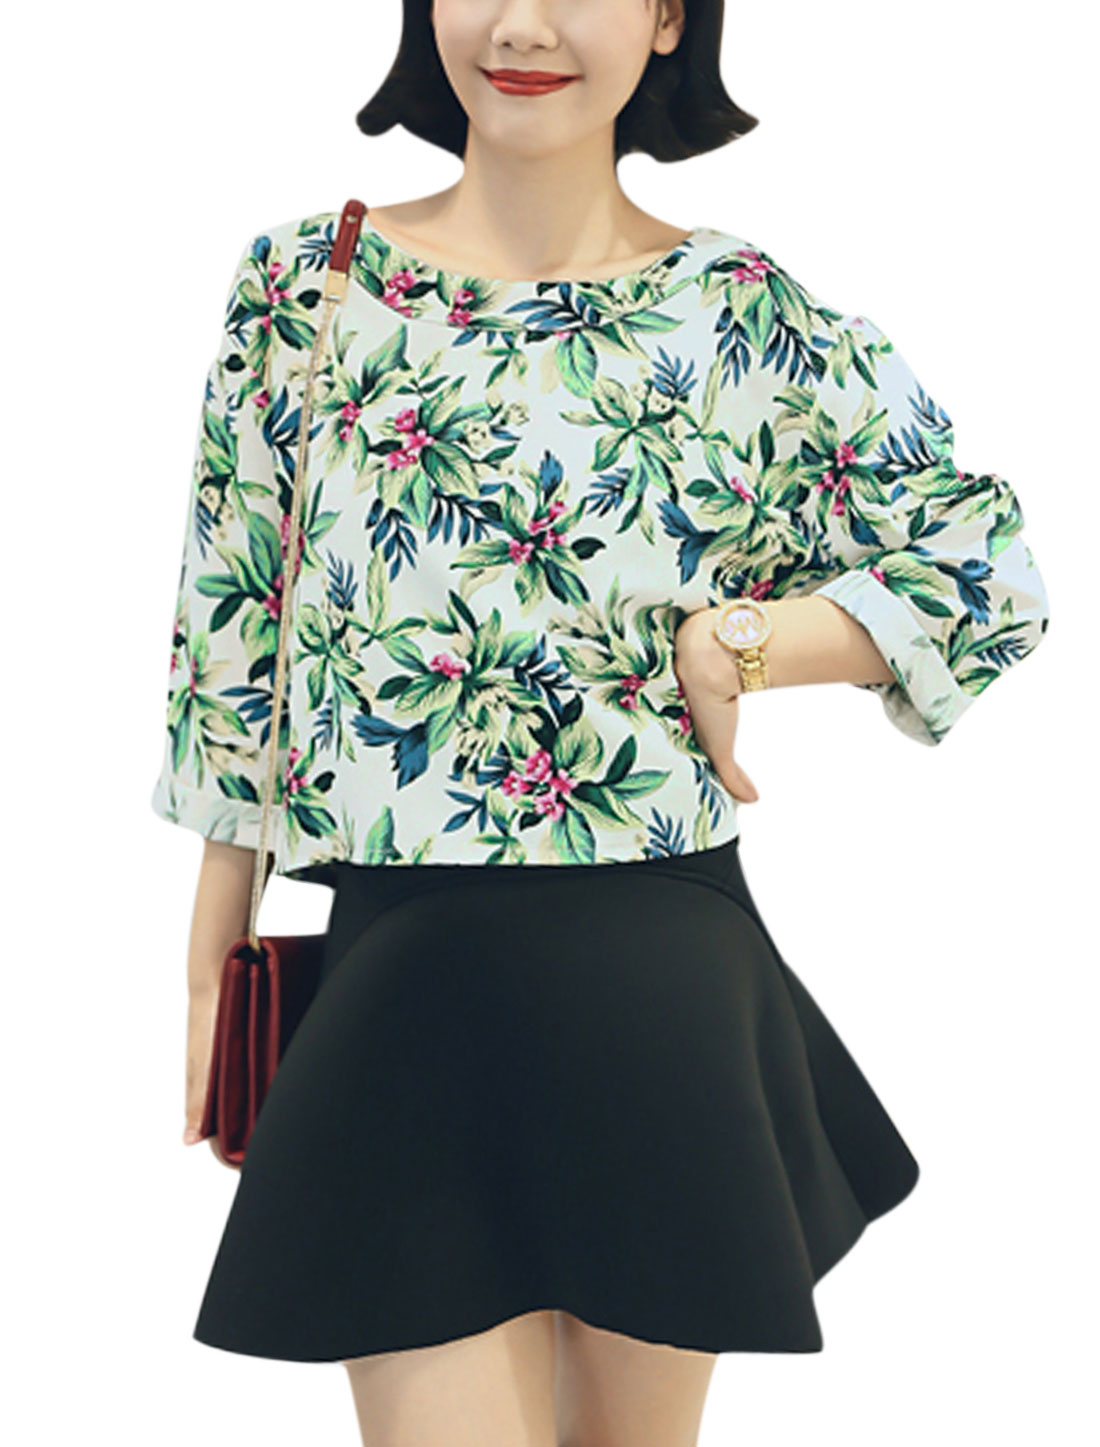 New Style Floral Pattern Stylish Casual Top for Lady Green XS